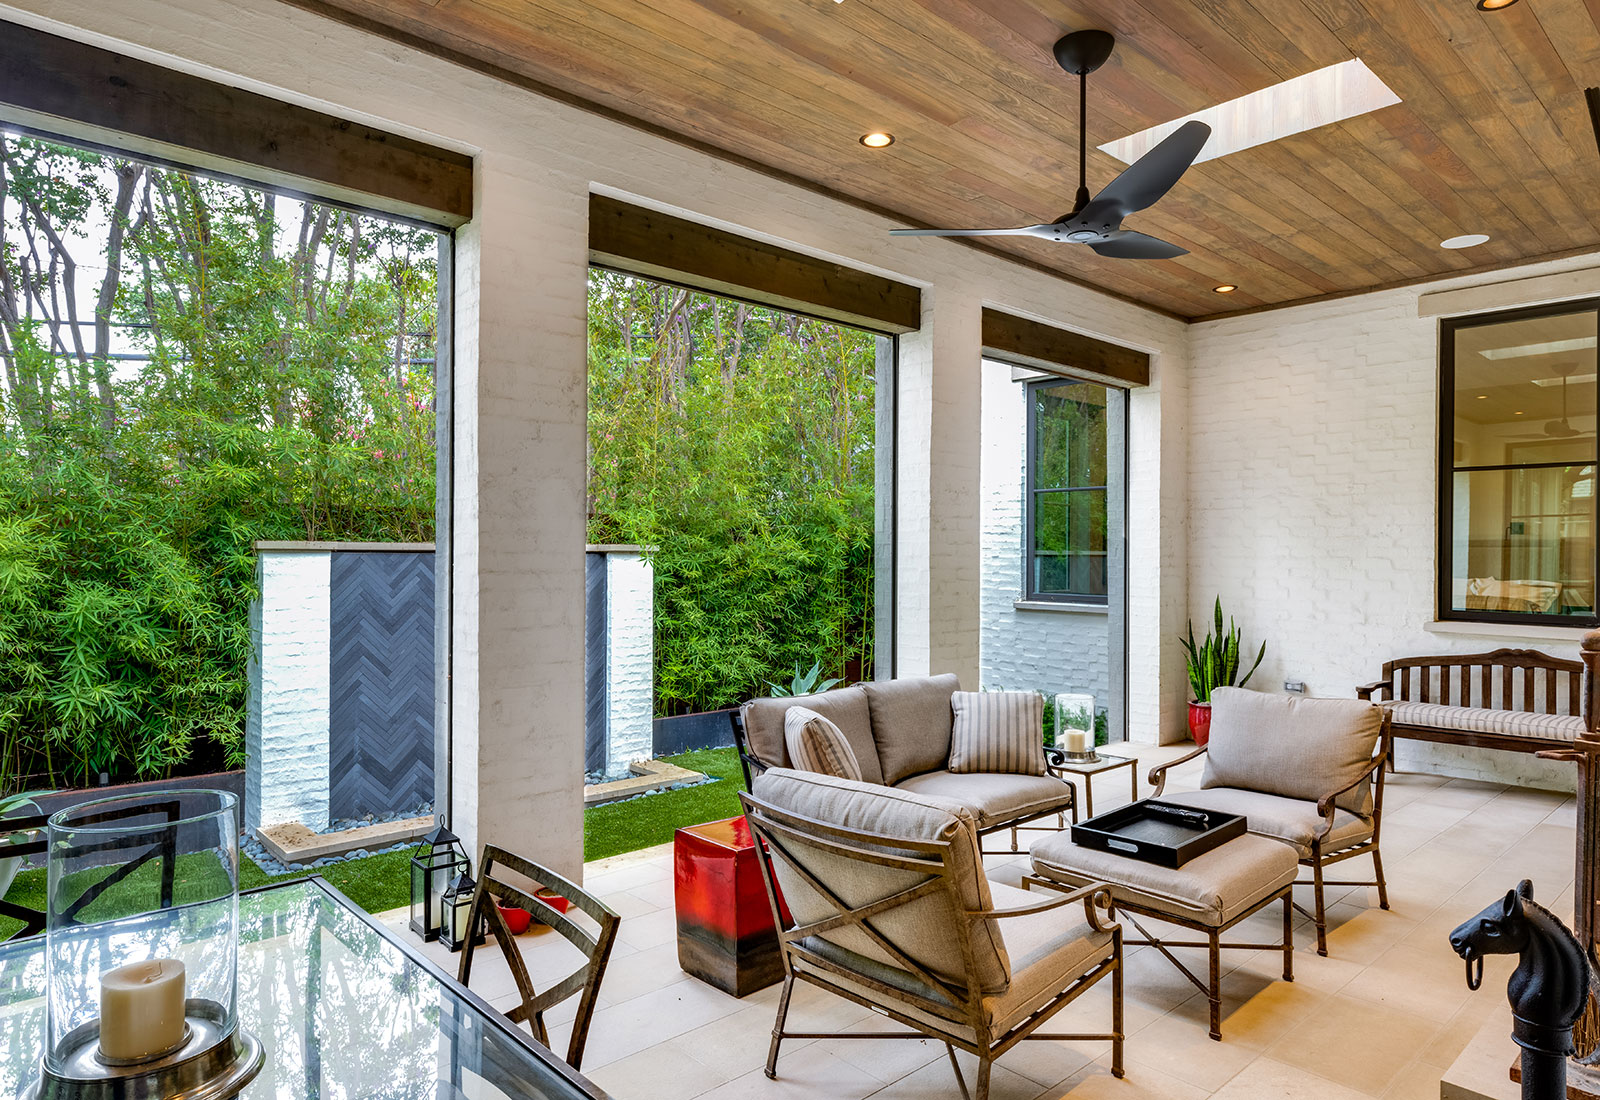 ddla-design-pemberton-modern-rear-screened-porch.jpg